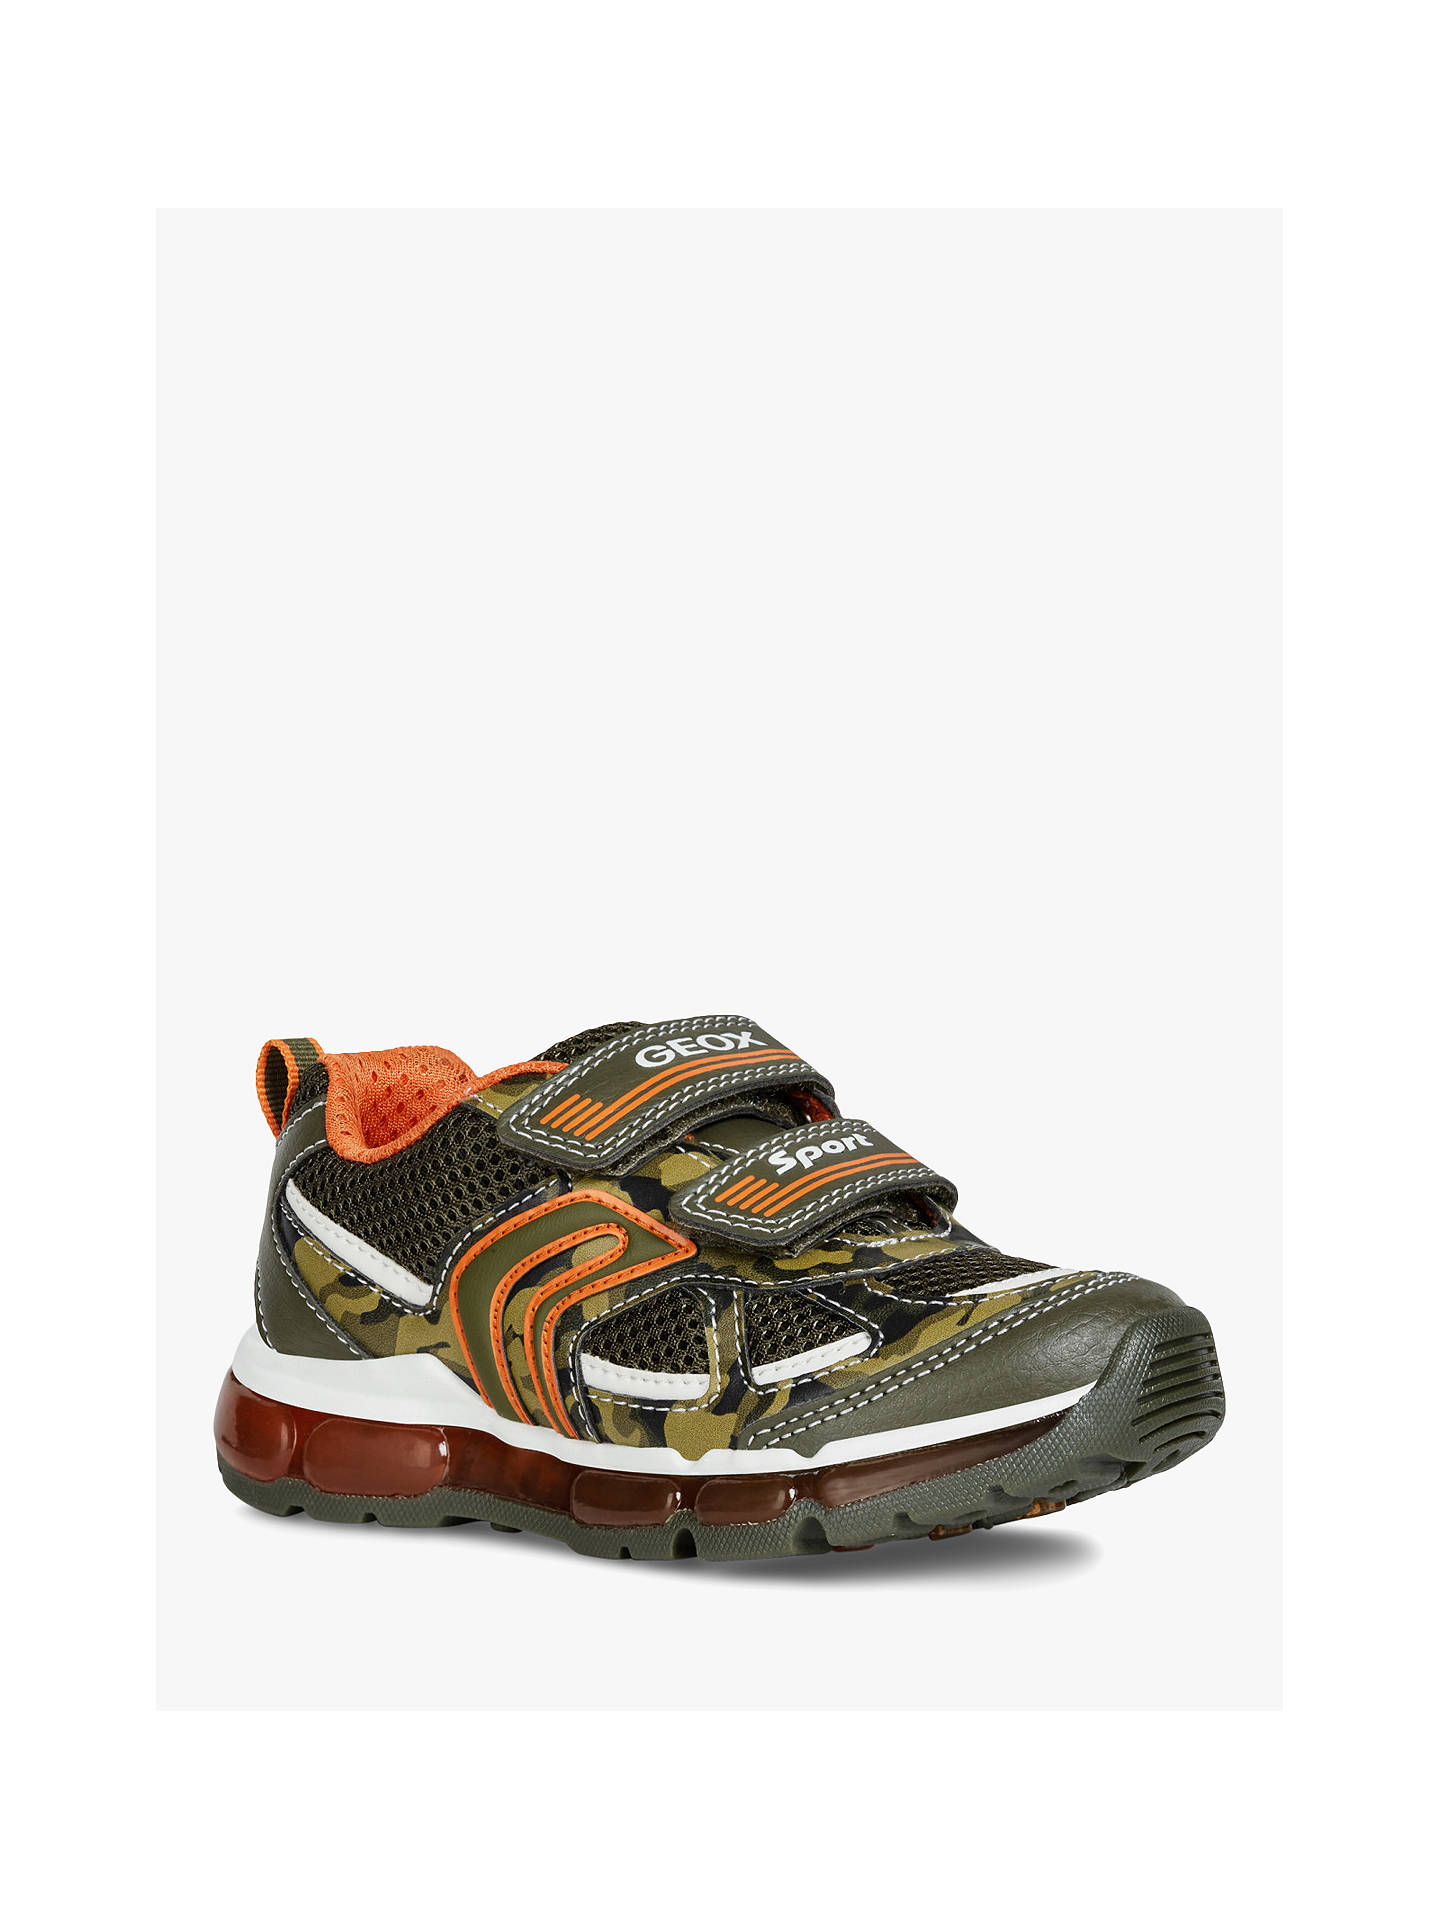 60a8186f7bb6 ... Buy Geox Children's J Android Riptape Trainers, Military/Orange, 33  Online at johnlewis ...